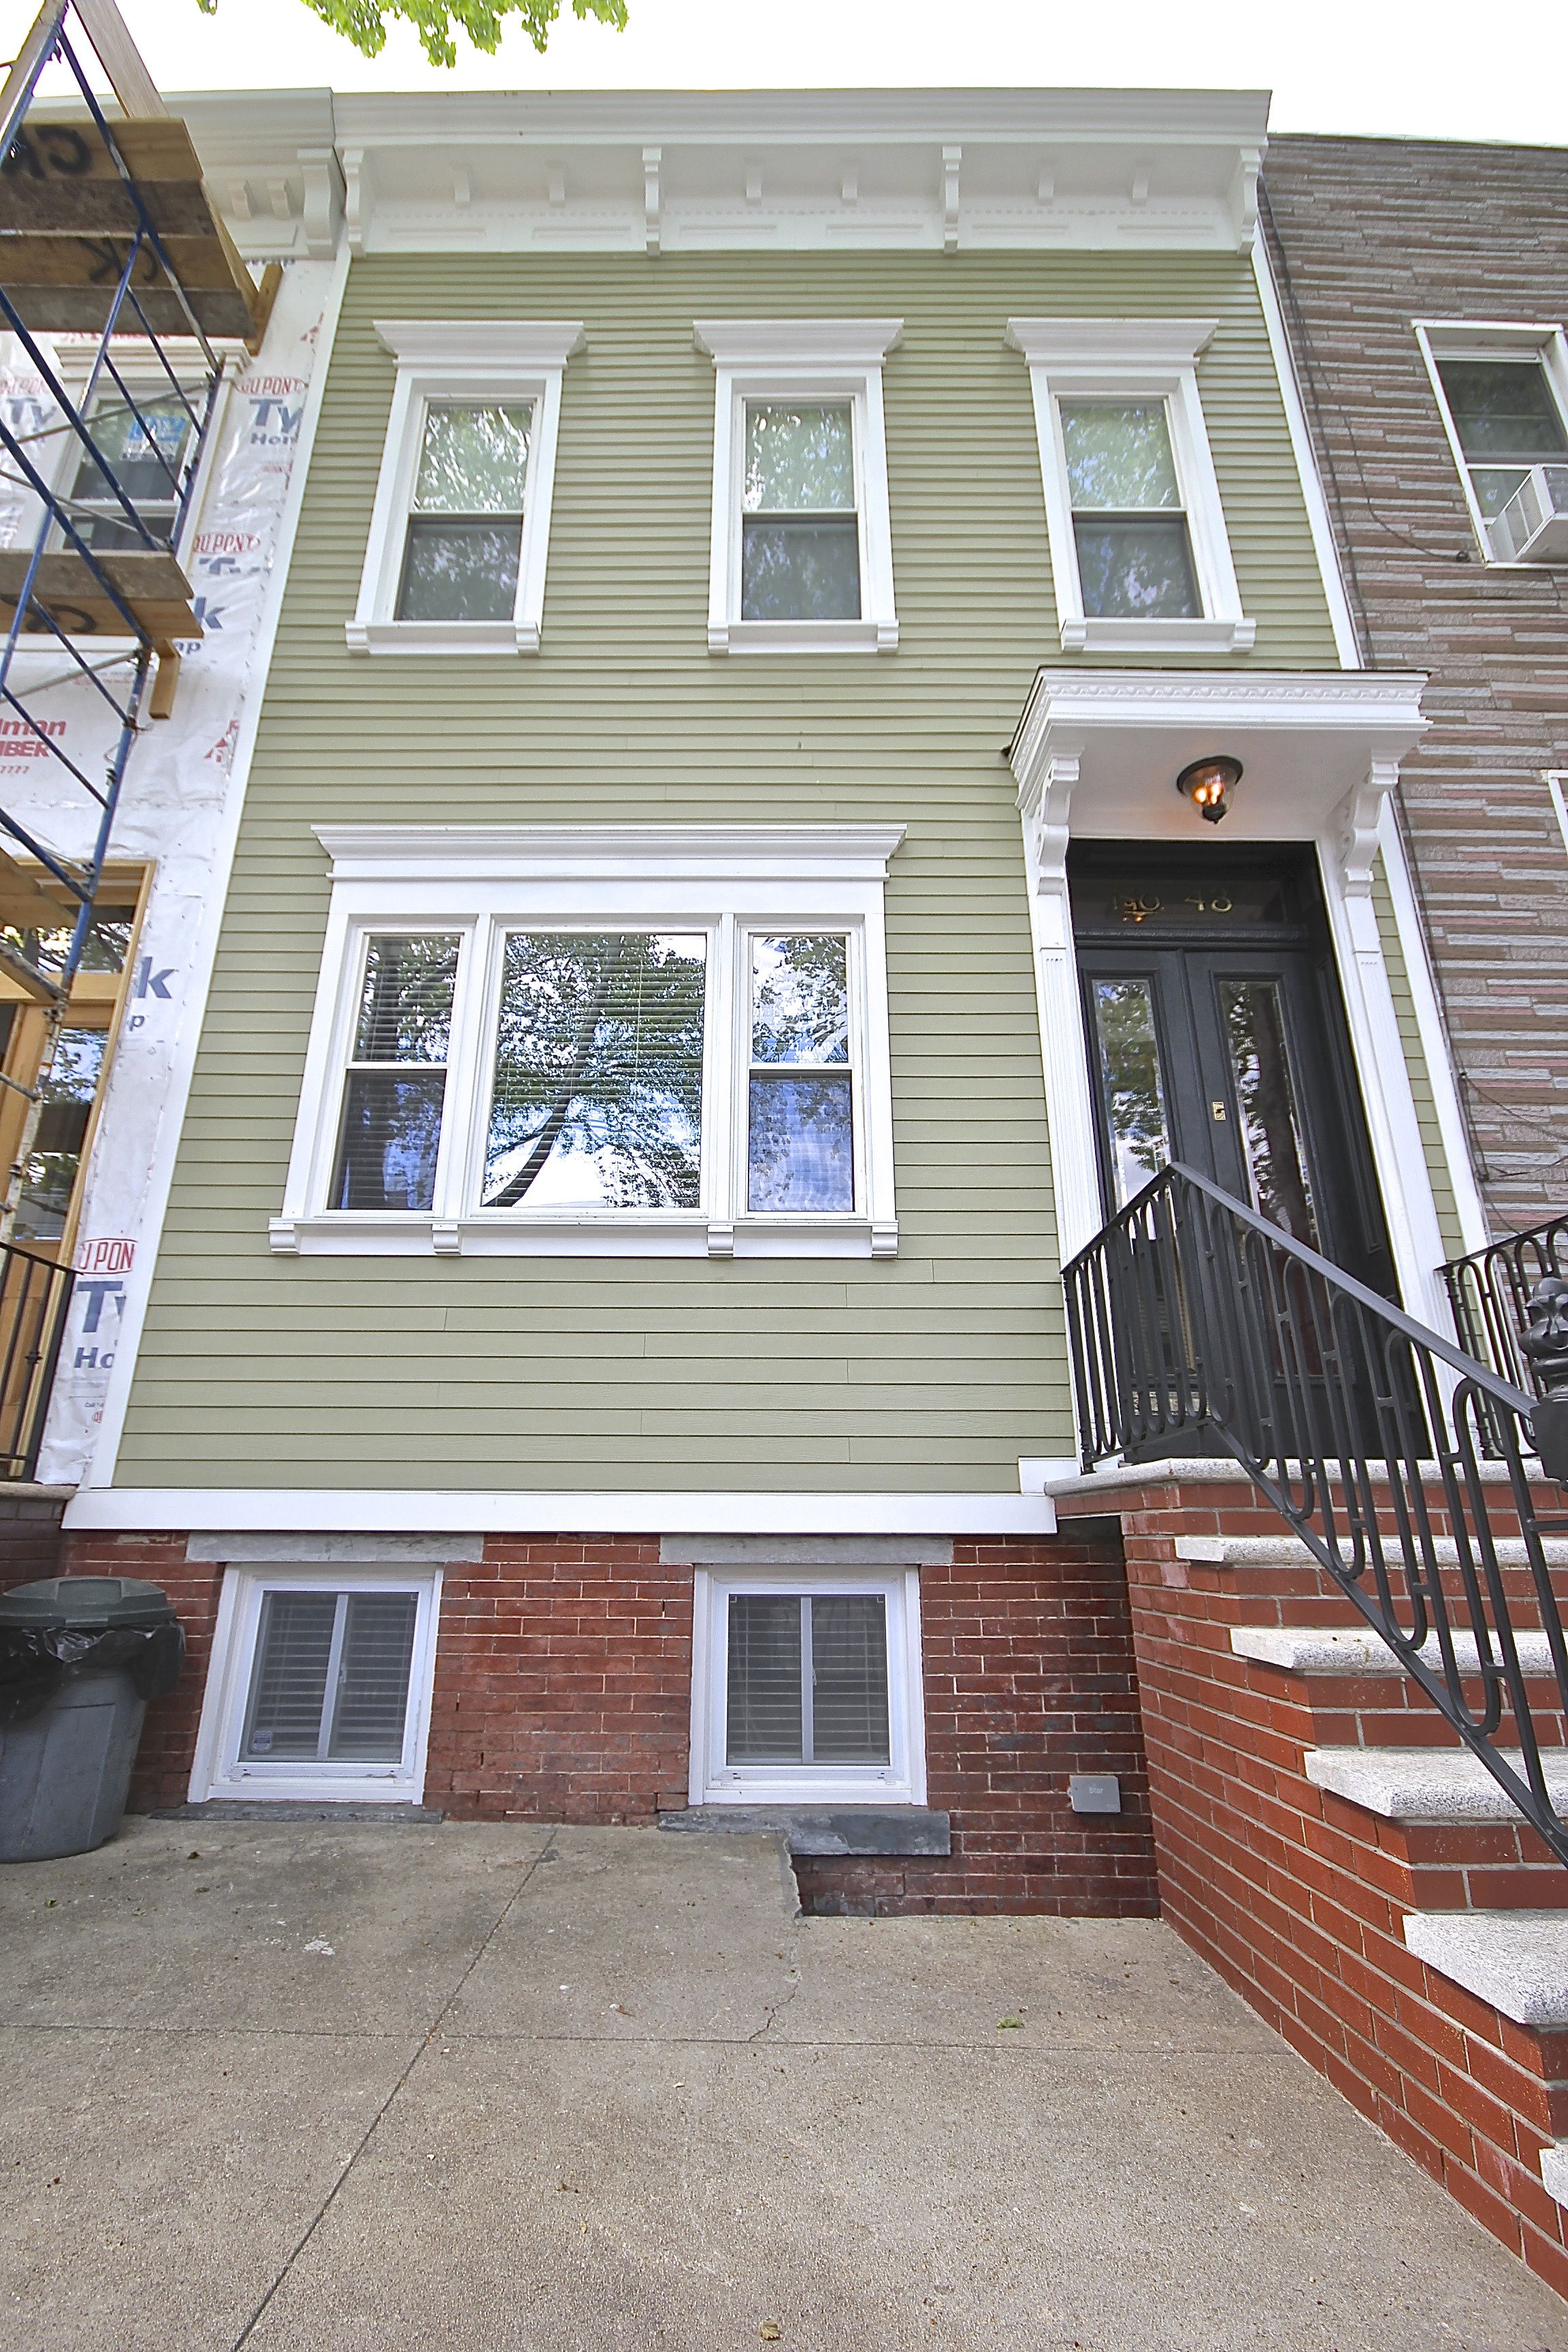 We Restored This Historic Brooklyn Home To Its Past Glory With Hardieplank Siding Hardie Siding Hardie Plank James Hardie Siding